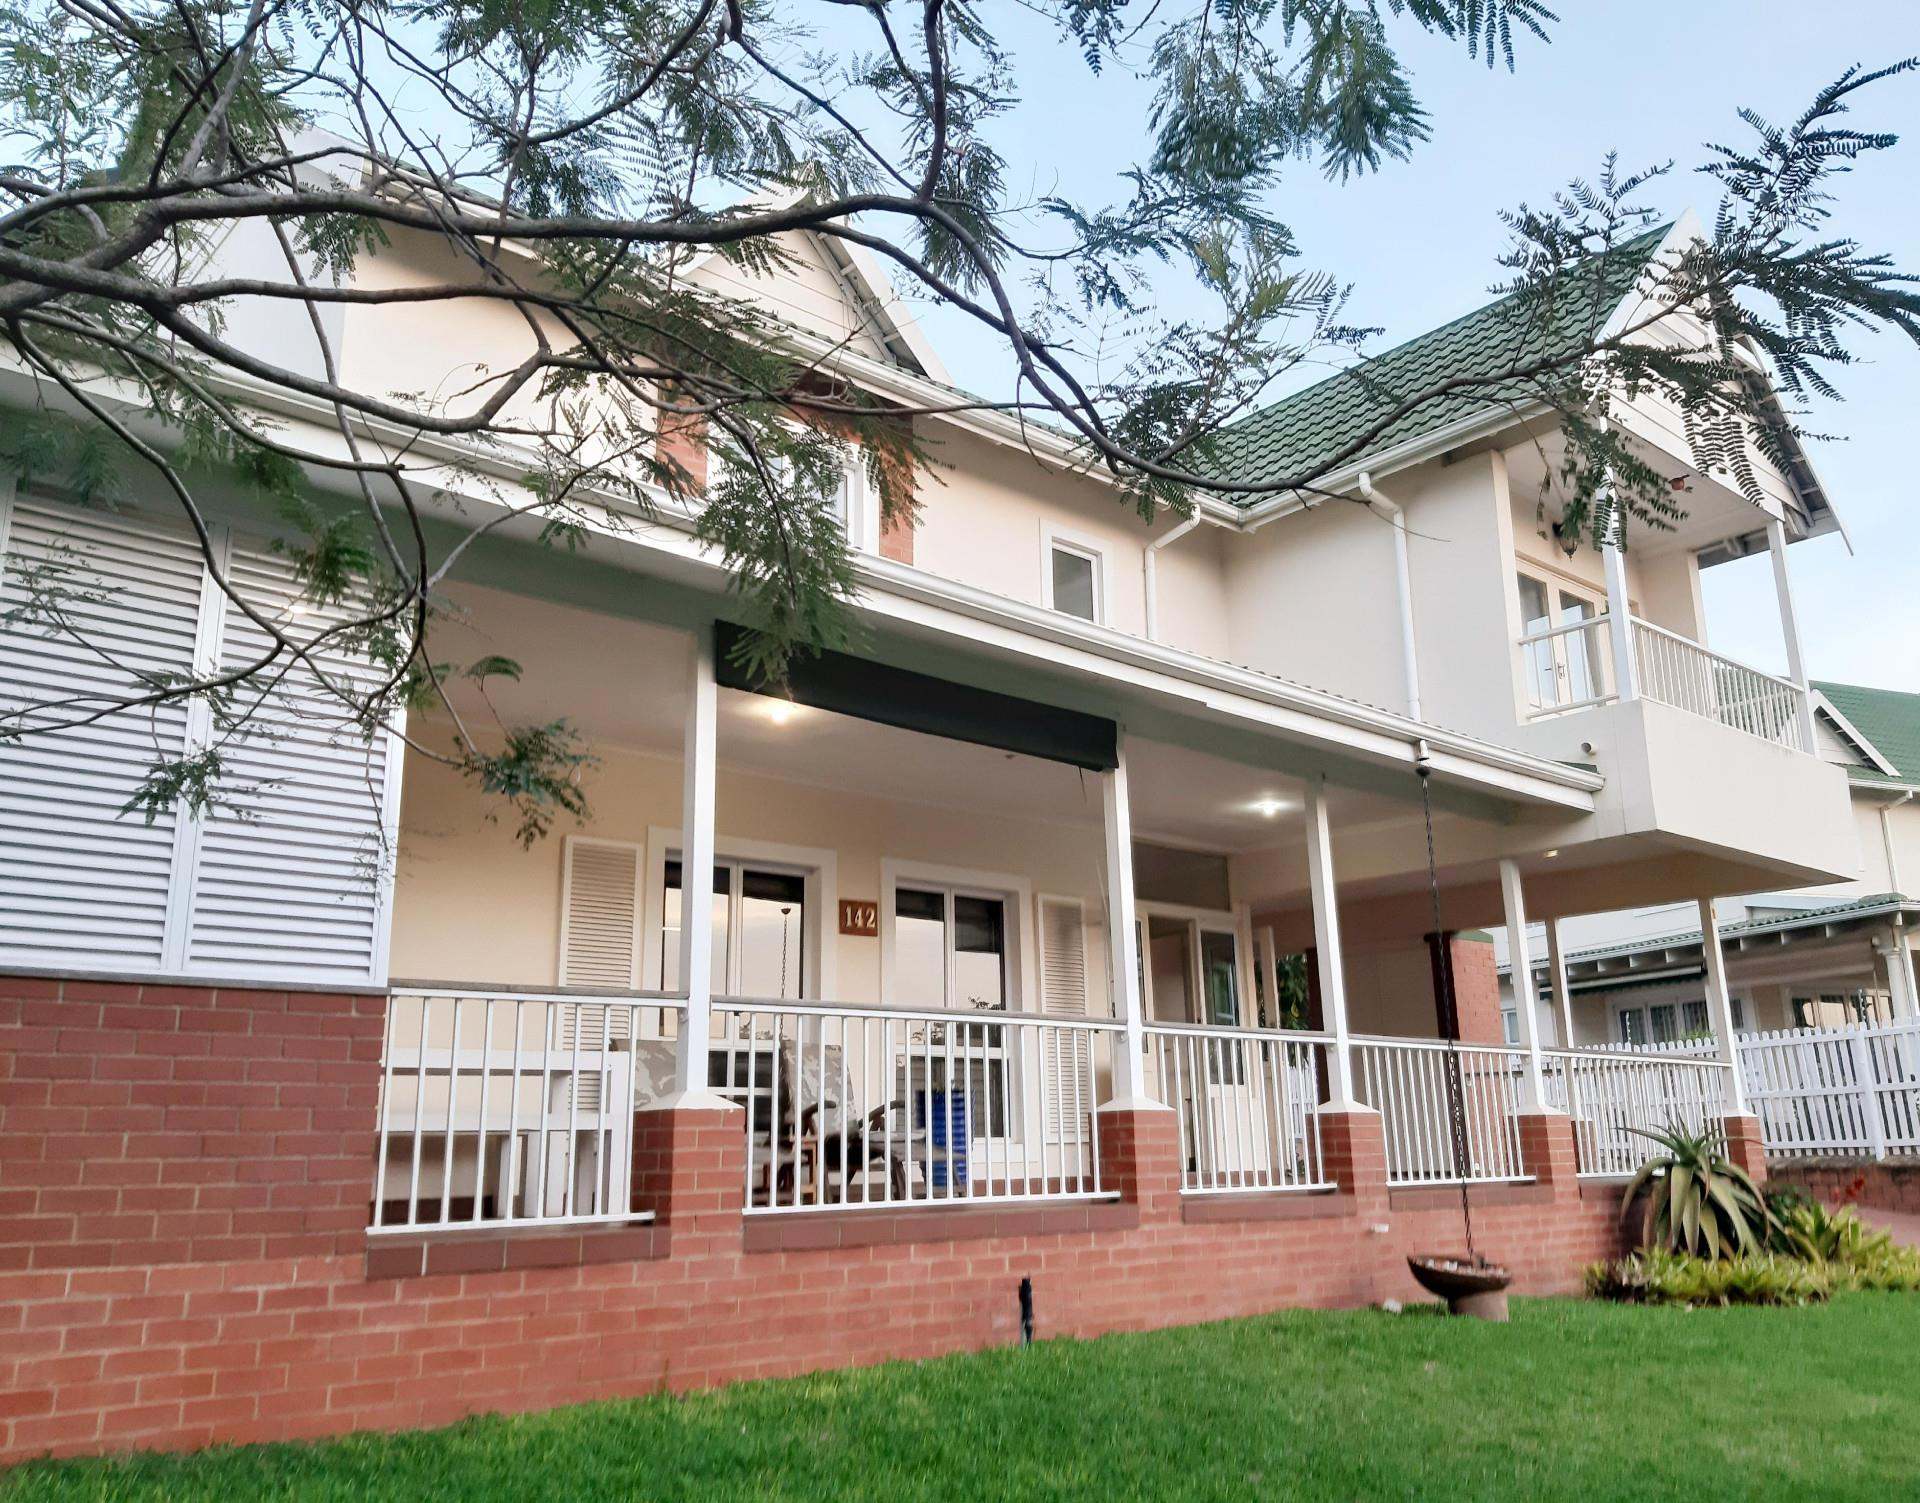 7 Bedroom House For Sale in Mount Edgecombe